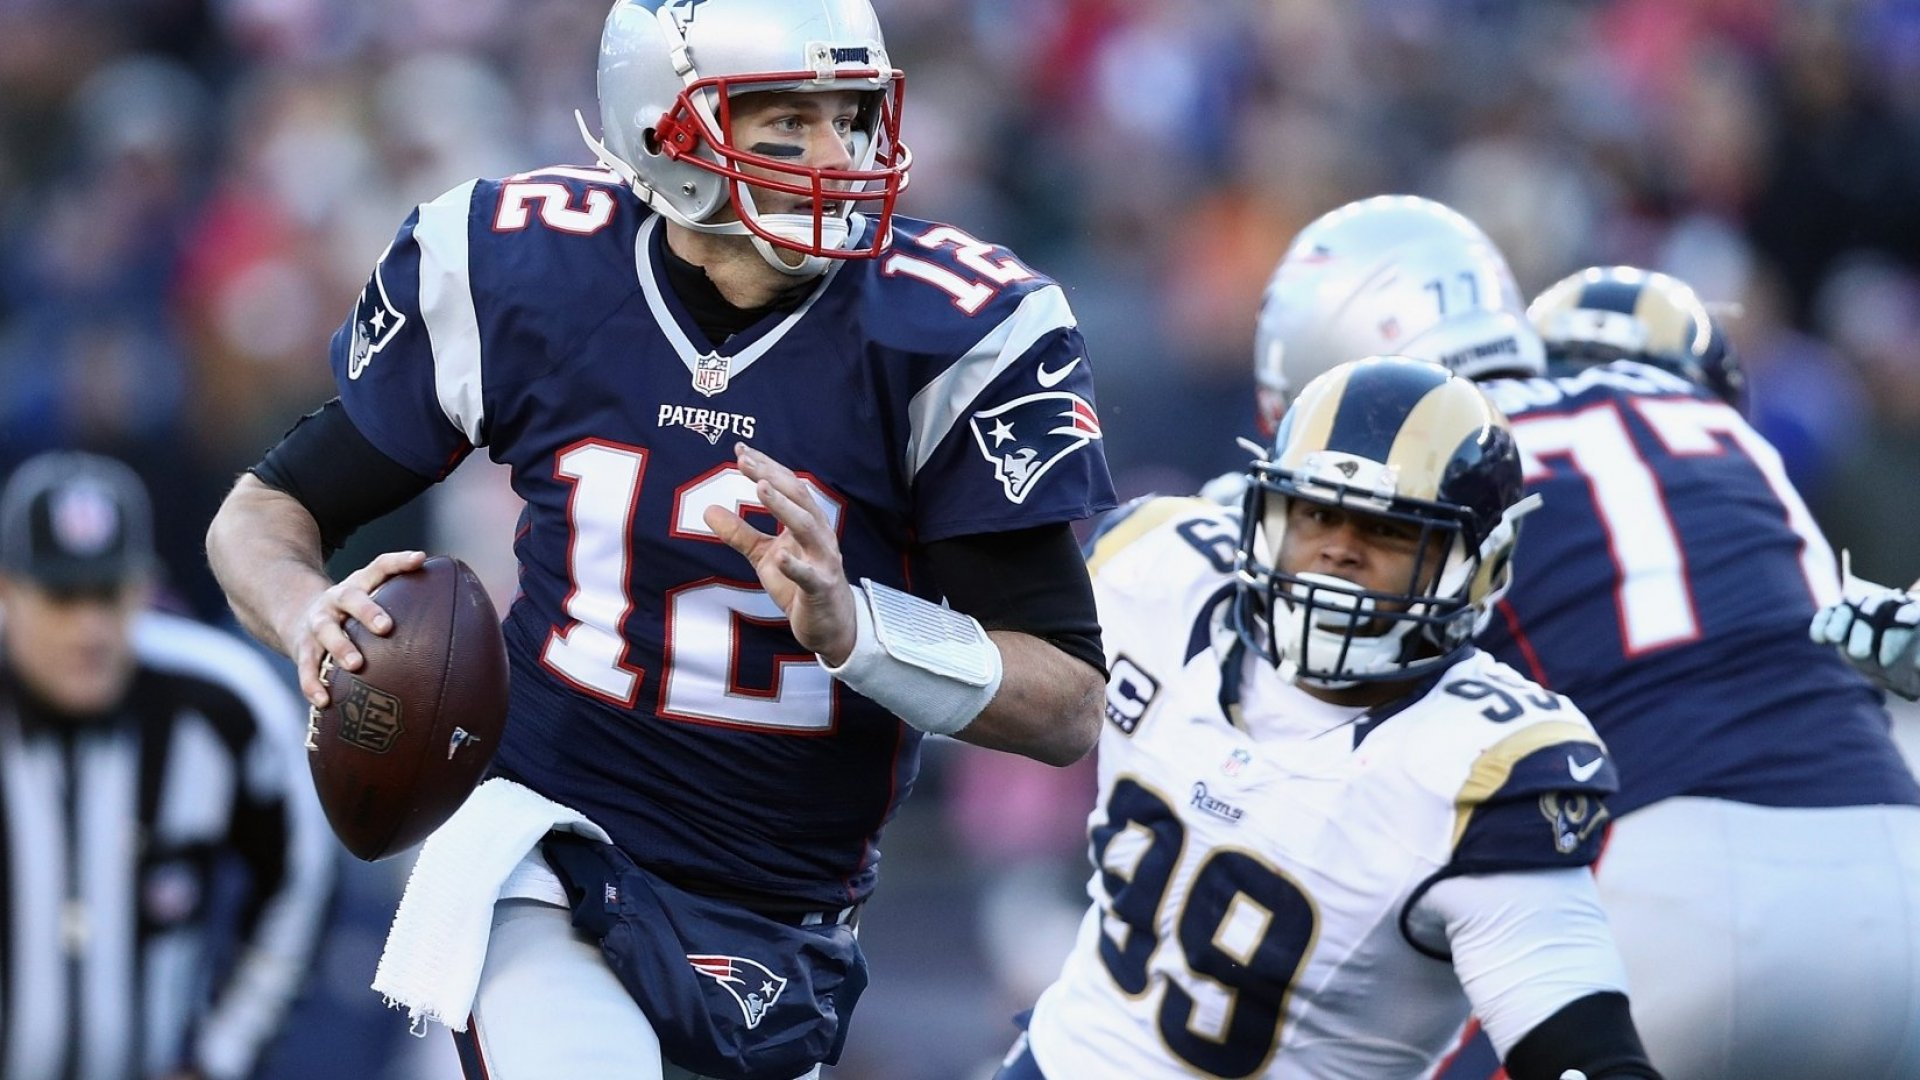 Tom Brady Lost His Temper on the Field. What He Did After the Game Showed True Leadership